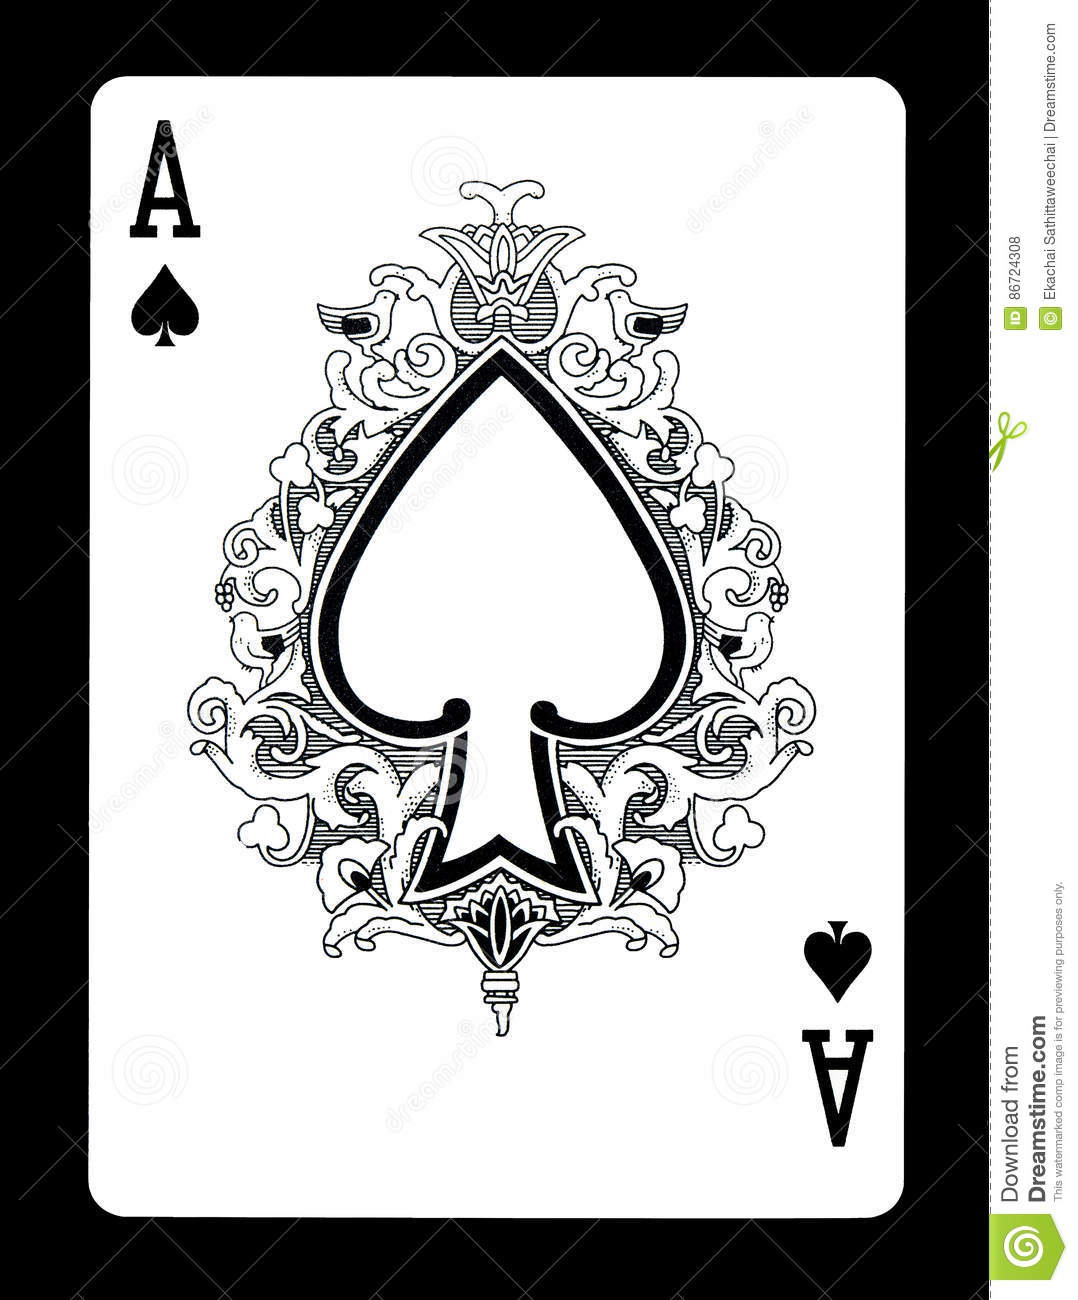 Ace Of Spades Playing Card Stock Photo Image Of Luck Leisure